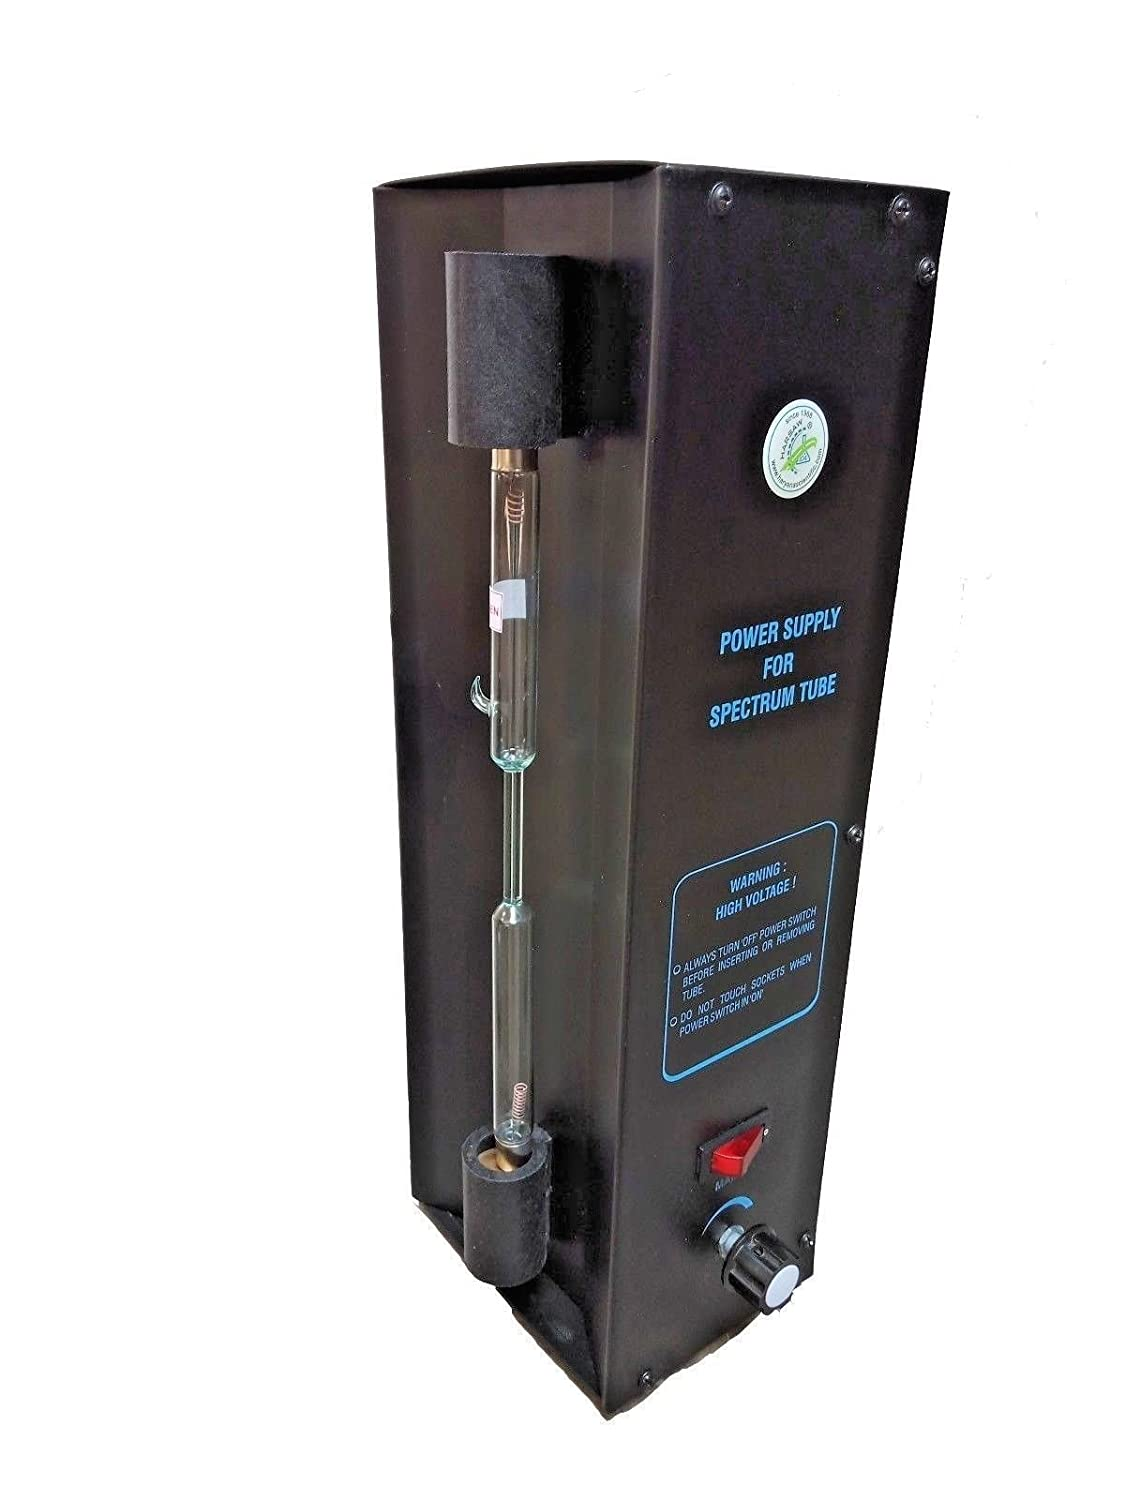 Spectrum Discharge Tube with Power Supply, Set of 18 Full Spectral Analysis: Amazon.com: Industrial & Scientific